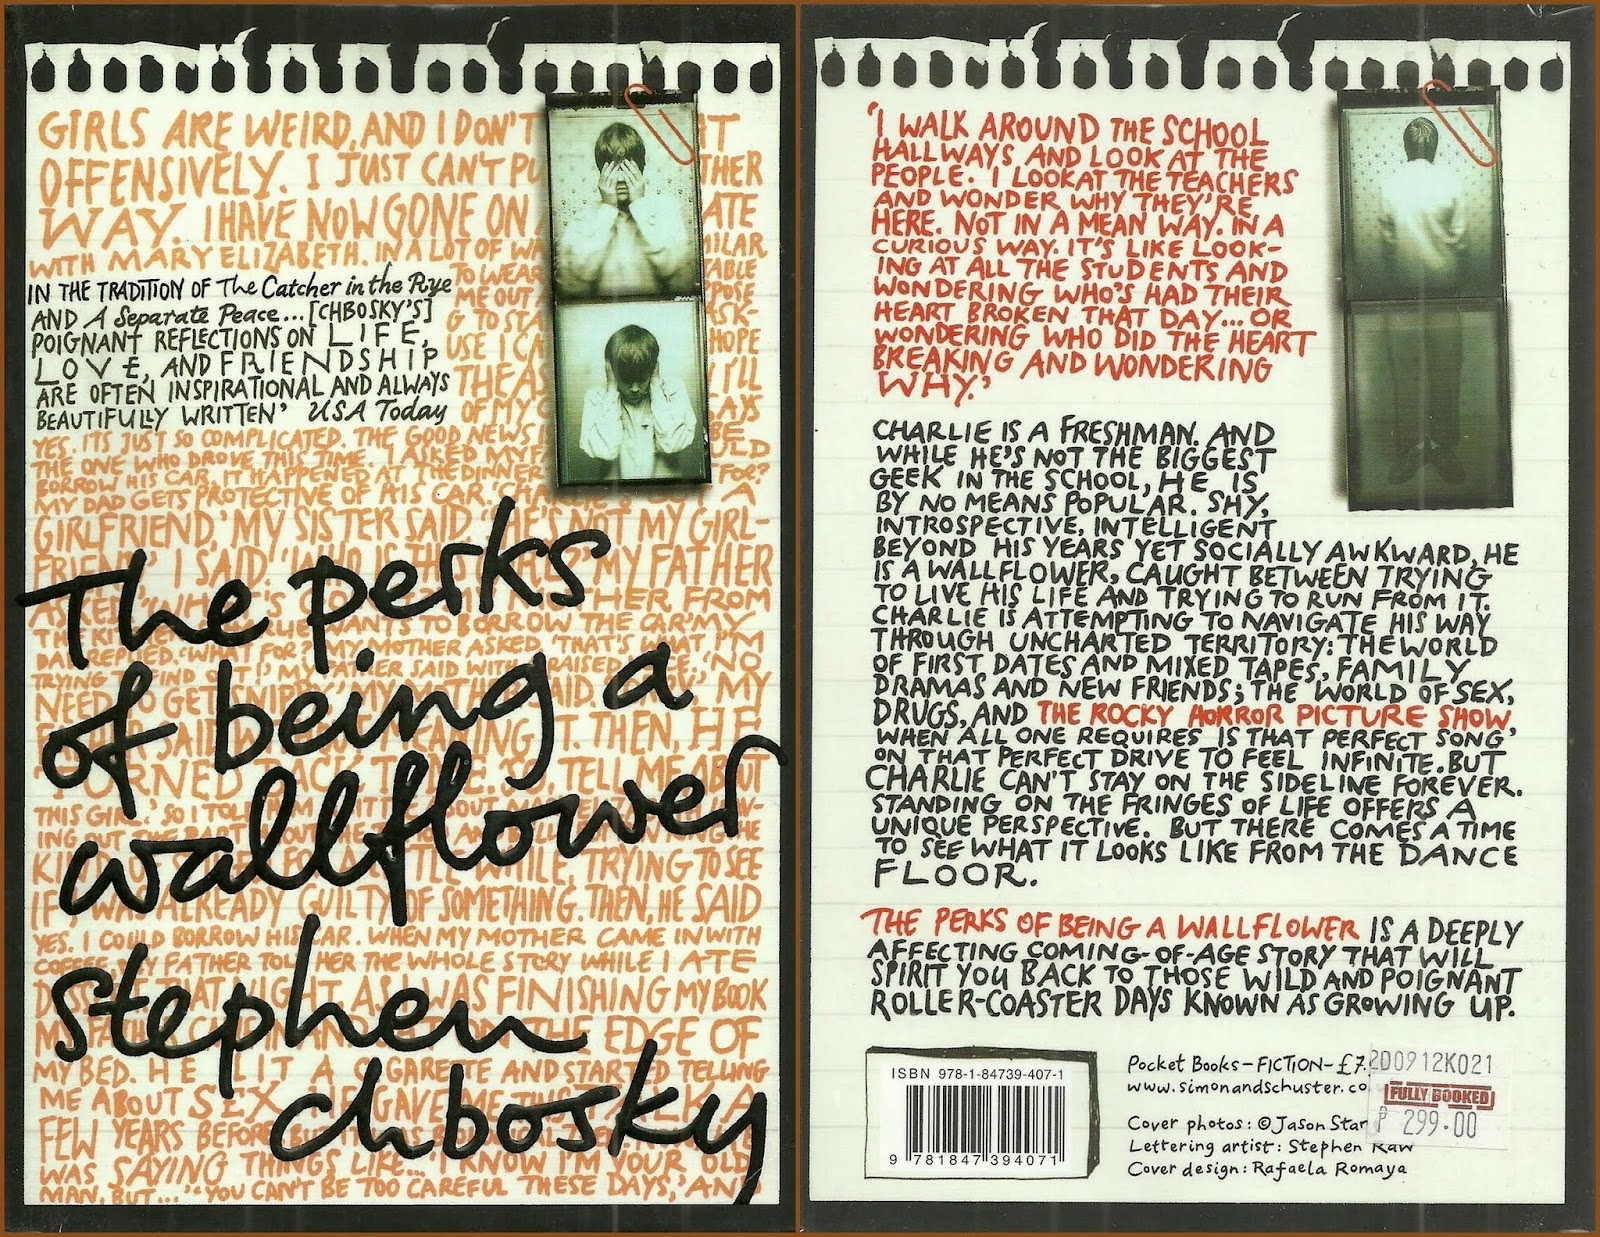 charlie s oib the perks of being a wallflower reading committee  the book cover and back